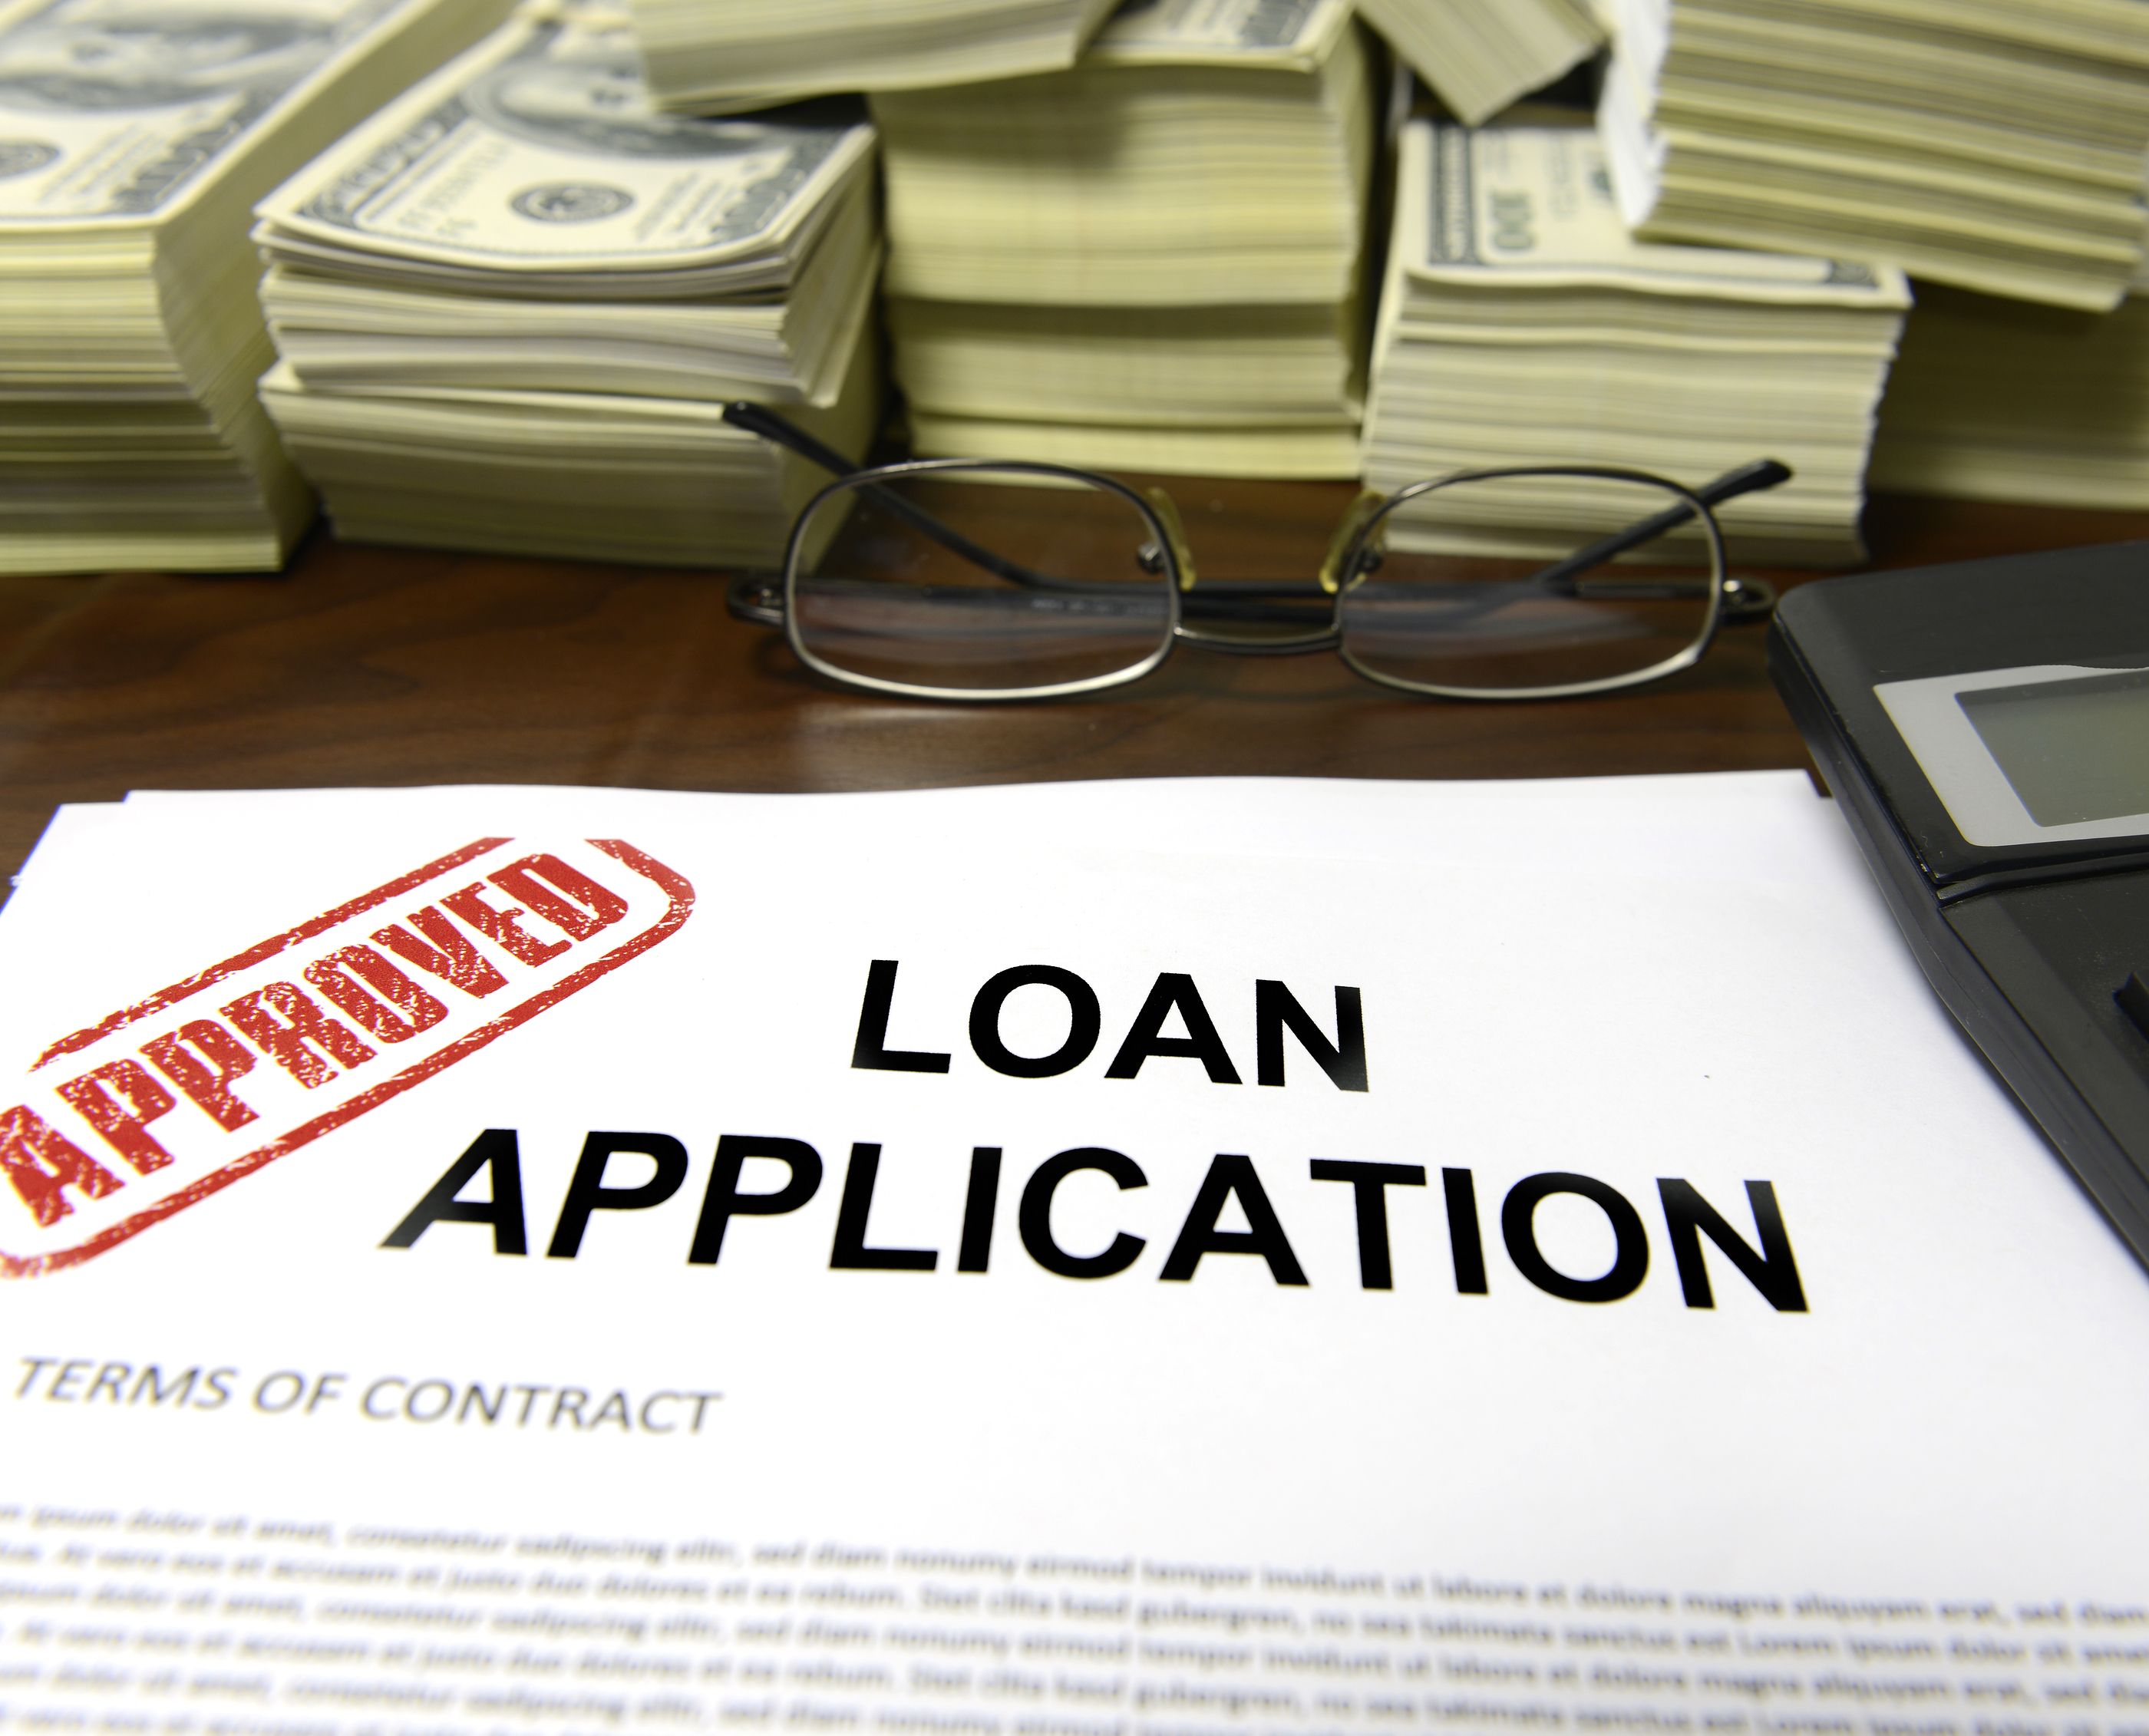 bigstock-Approved-loan-application-and-40435825.jpg